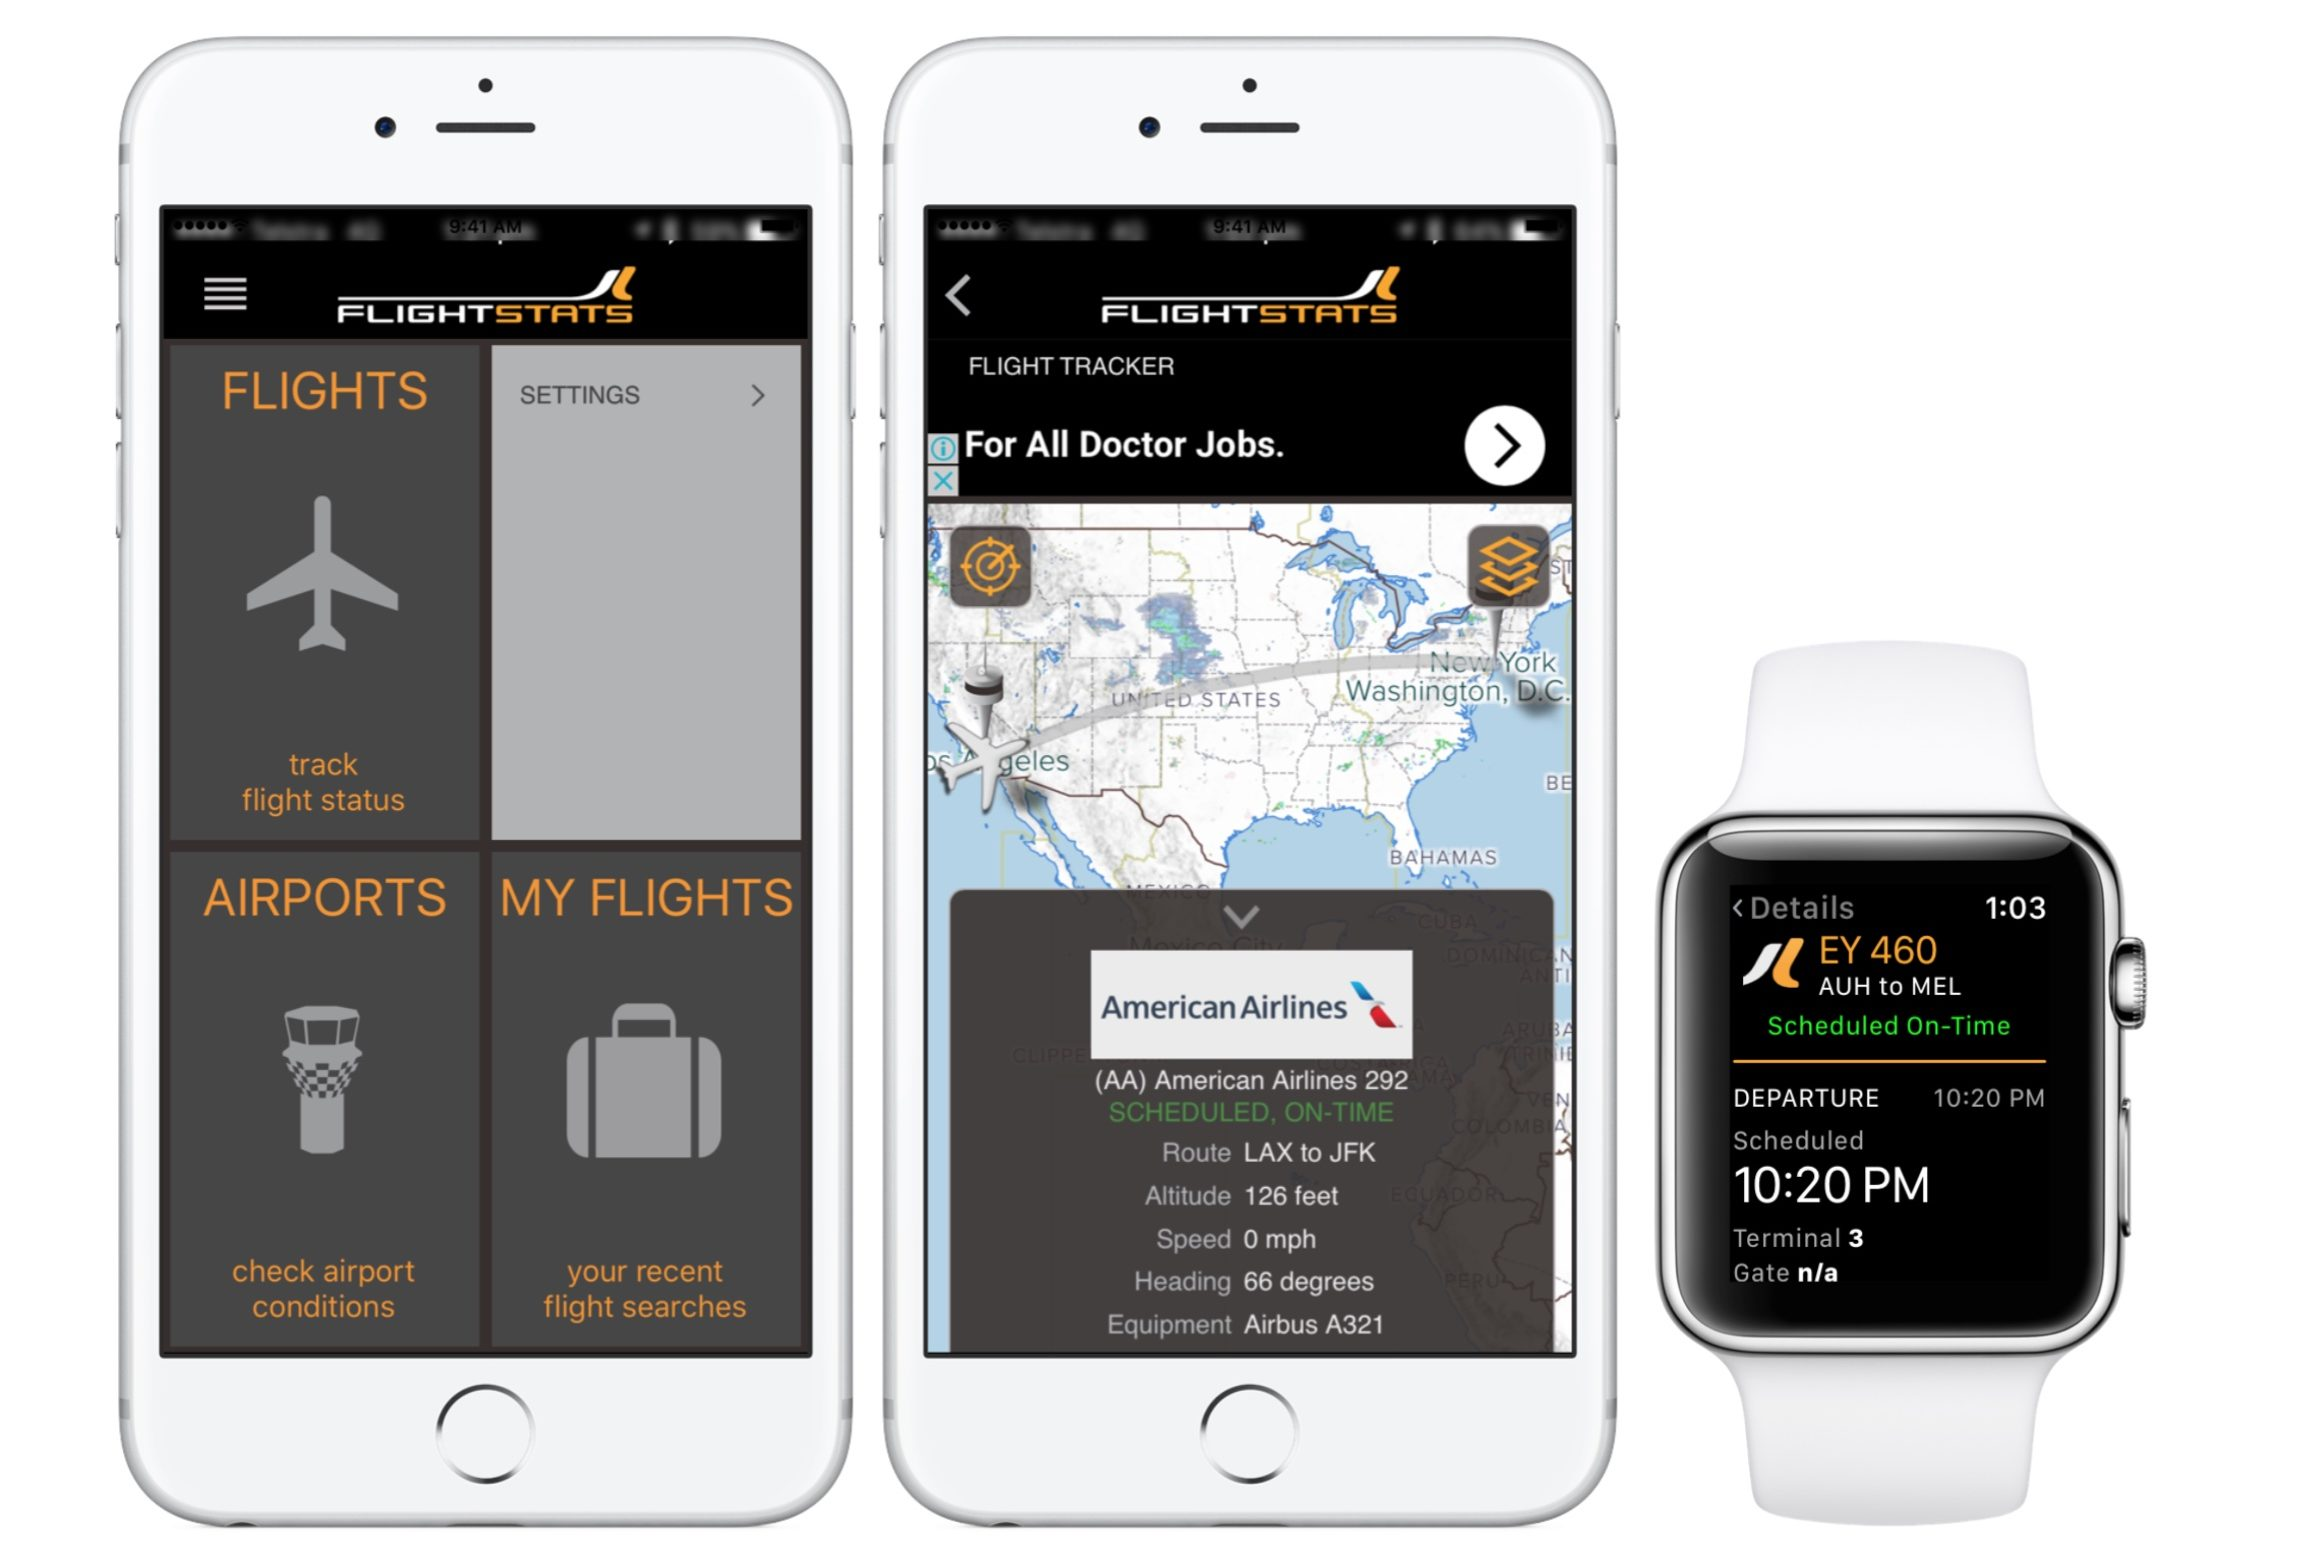 flight tracker apps for iphone - flightstats